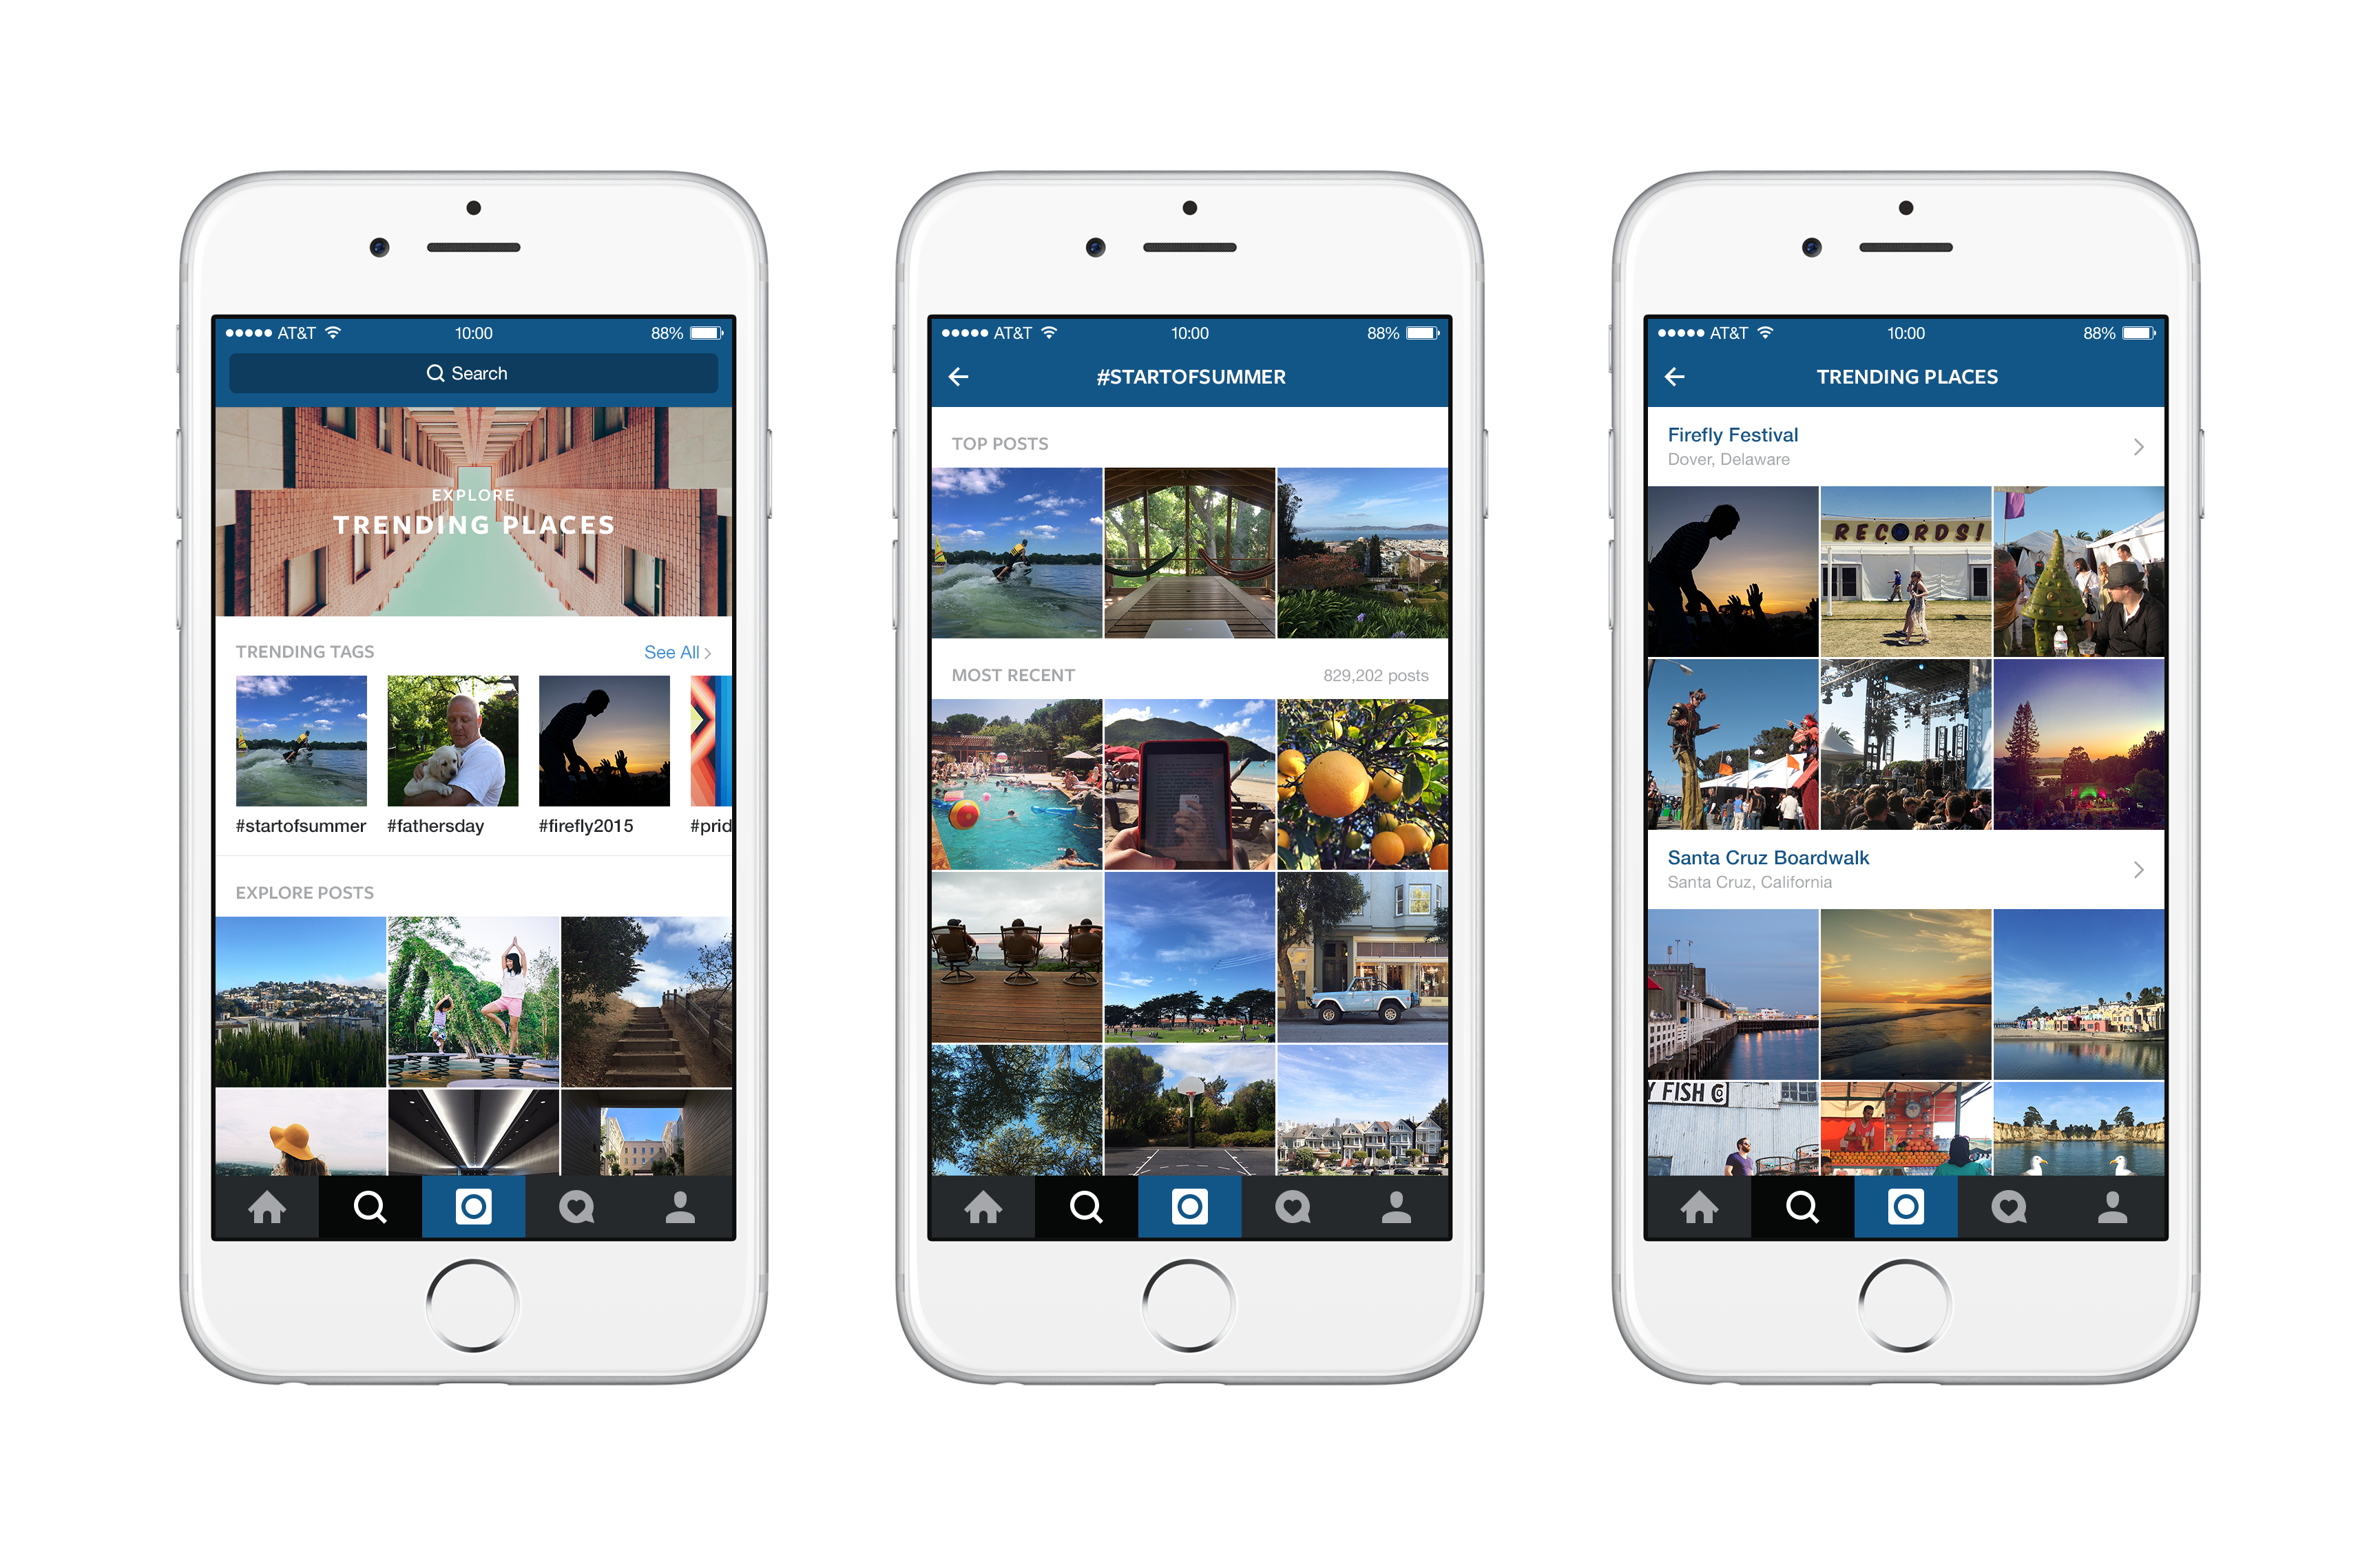 Instagram's All-New Search & Explore Features Will Change How You Use Instagram